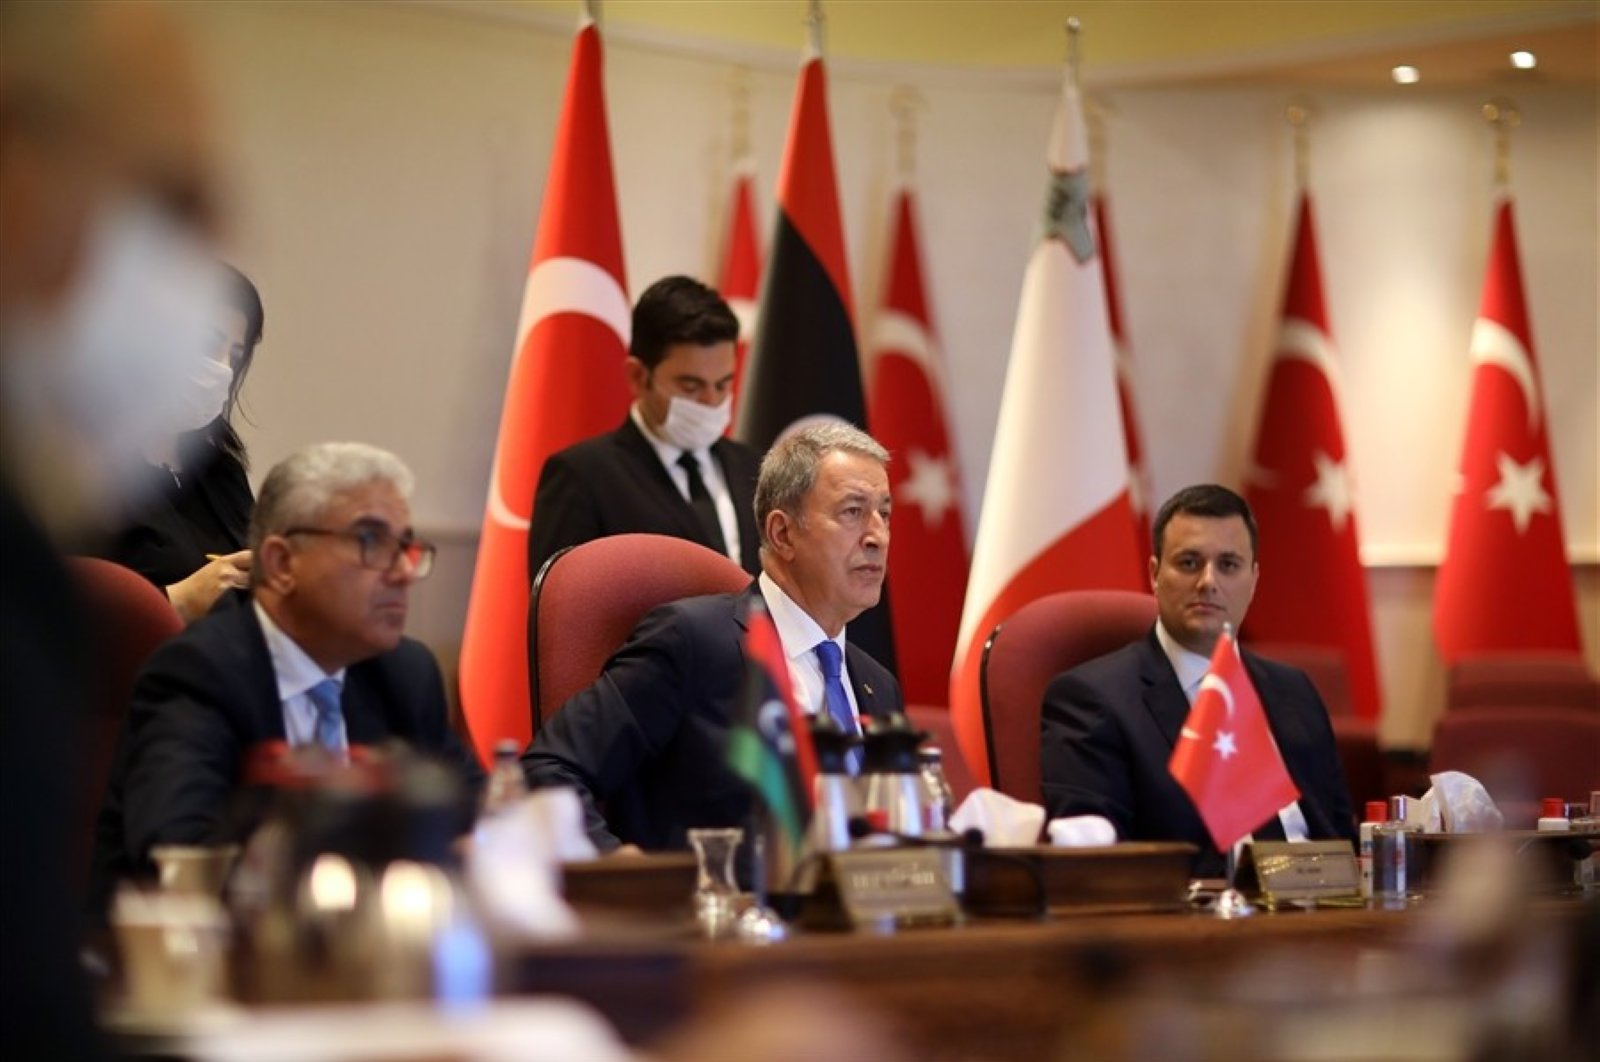 Turkey's defense minister Hulusi Akar (C) holds a trilateral meeting with Libya's interior minister Fathi Bashagha (L) and the Maltese minister of home affairs and national security Byron Camilleri (R), in Ankara, July 20, 2020. (IHA)